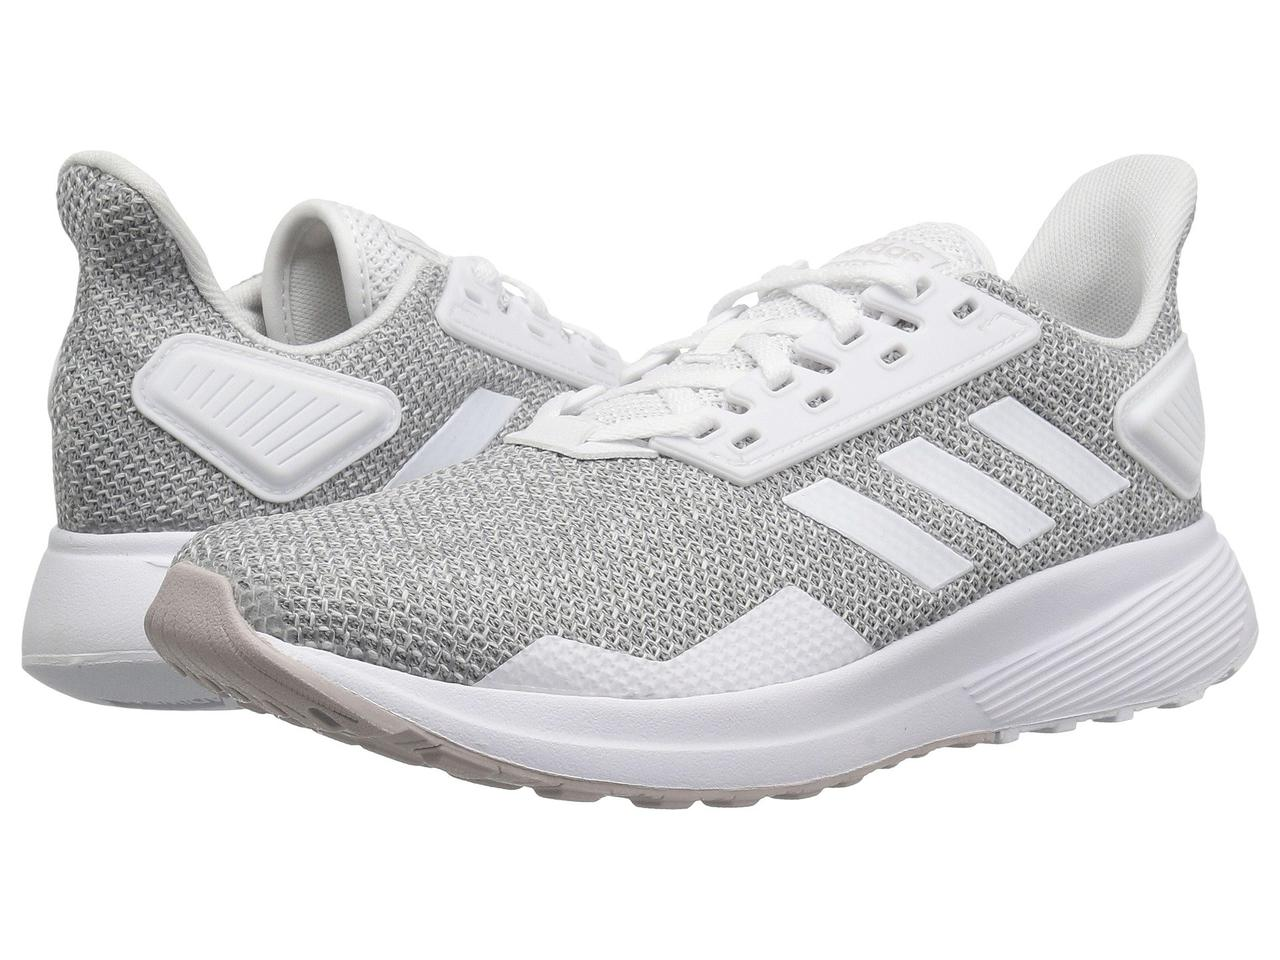 01da5b10095f Кроссовки Кеды (Оригинал) adidas Running Duramo 9 Ice Purple White Light